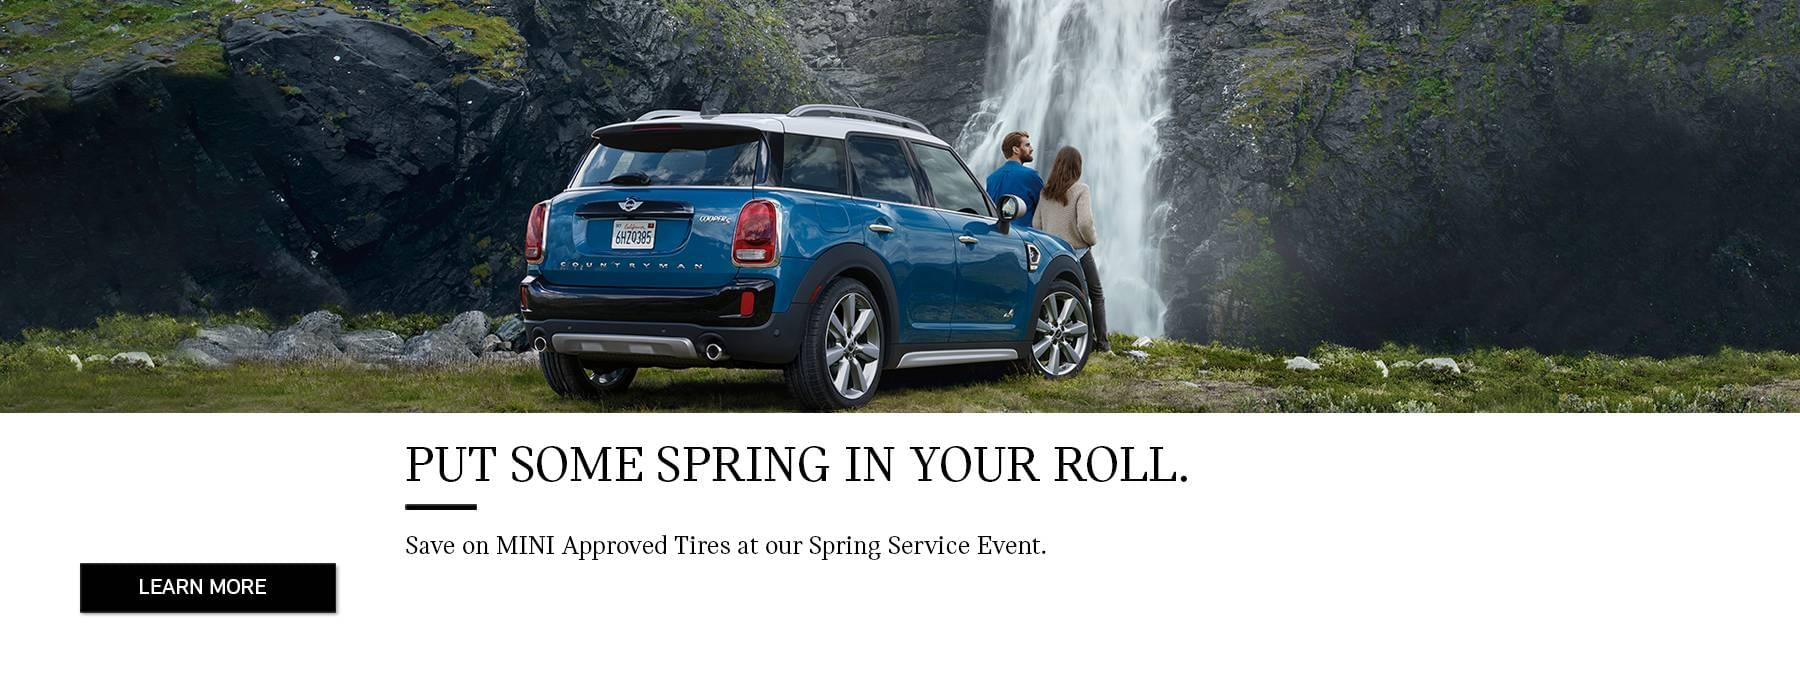 MINI_SpringTire17_Dealer_1800x700